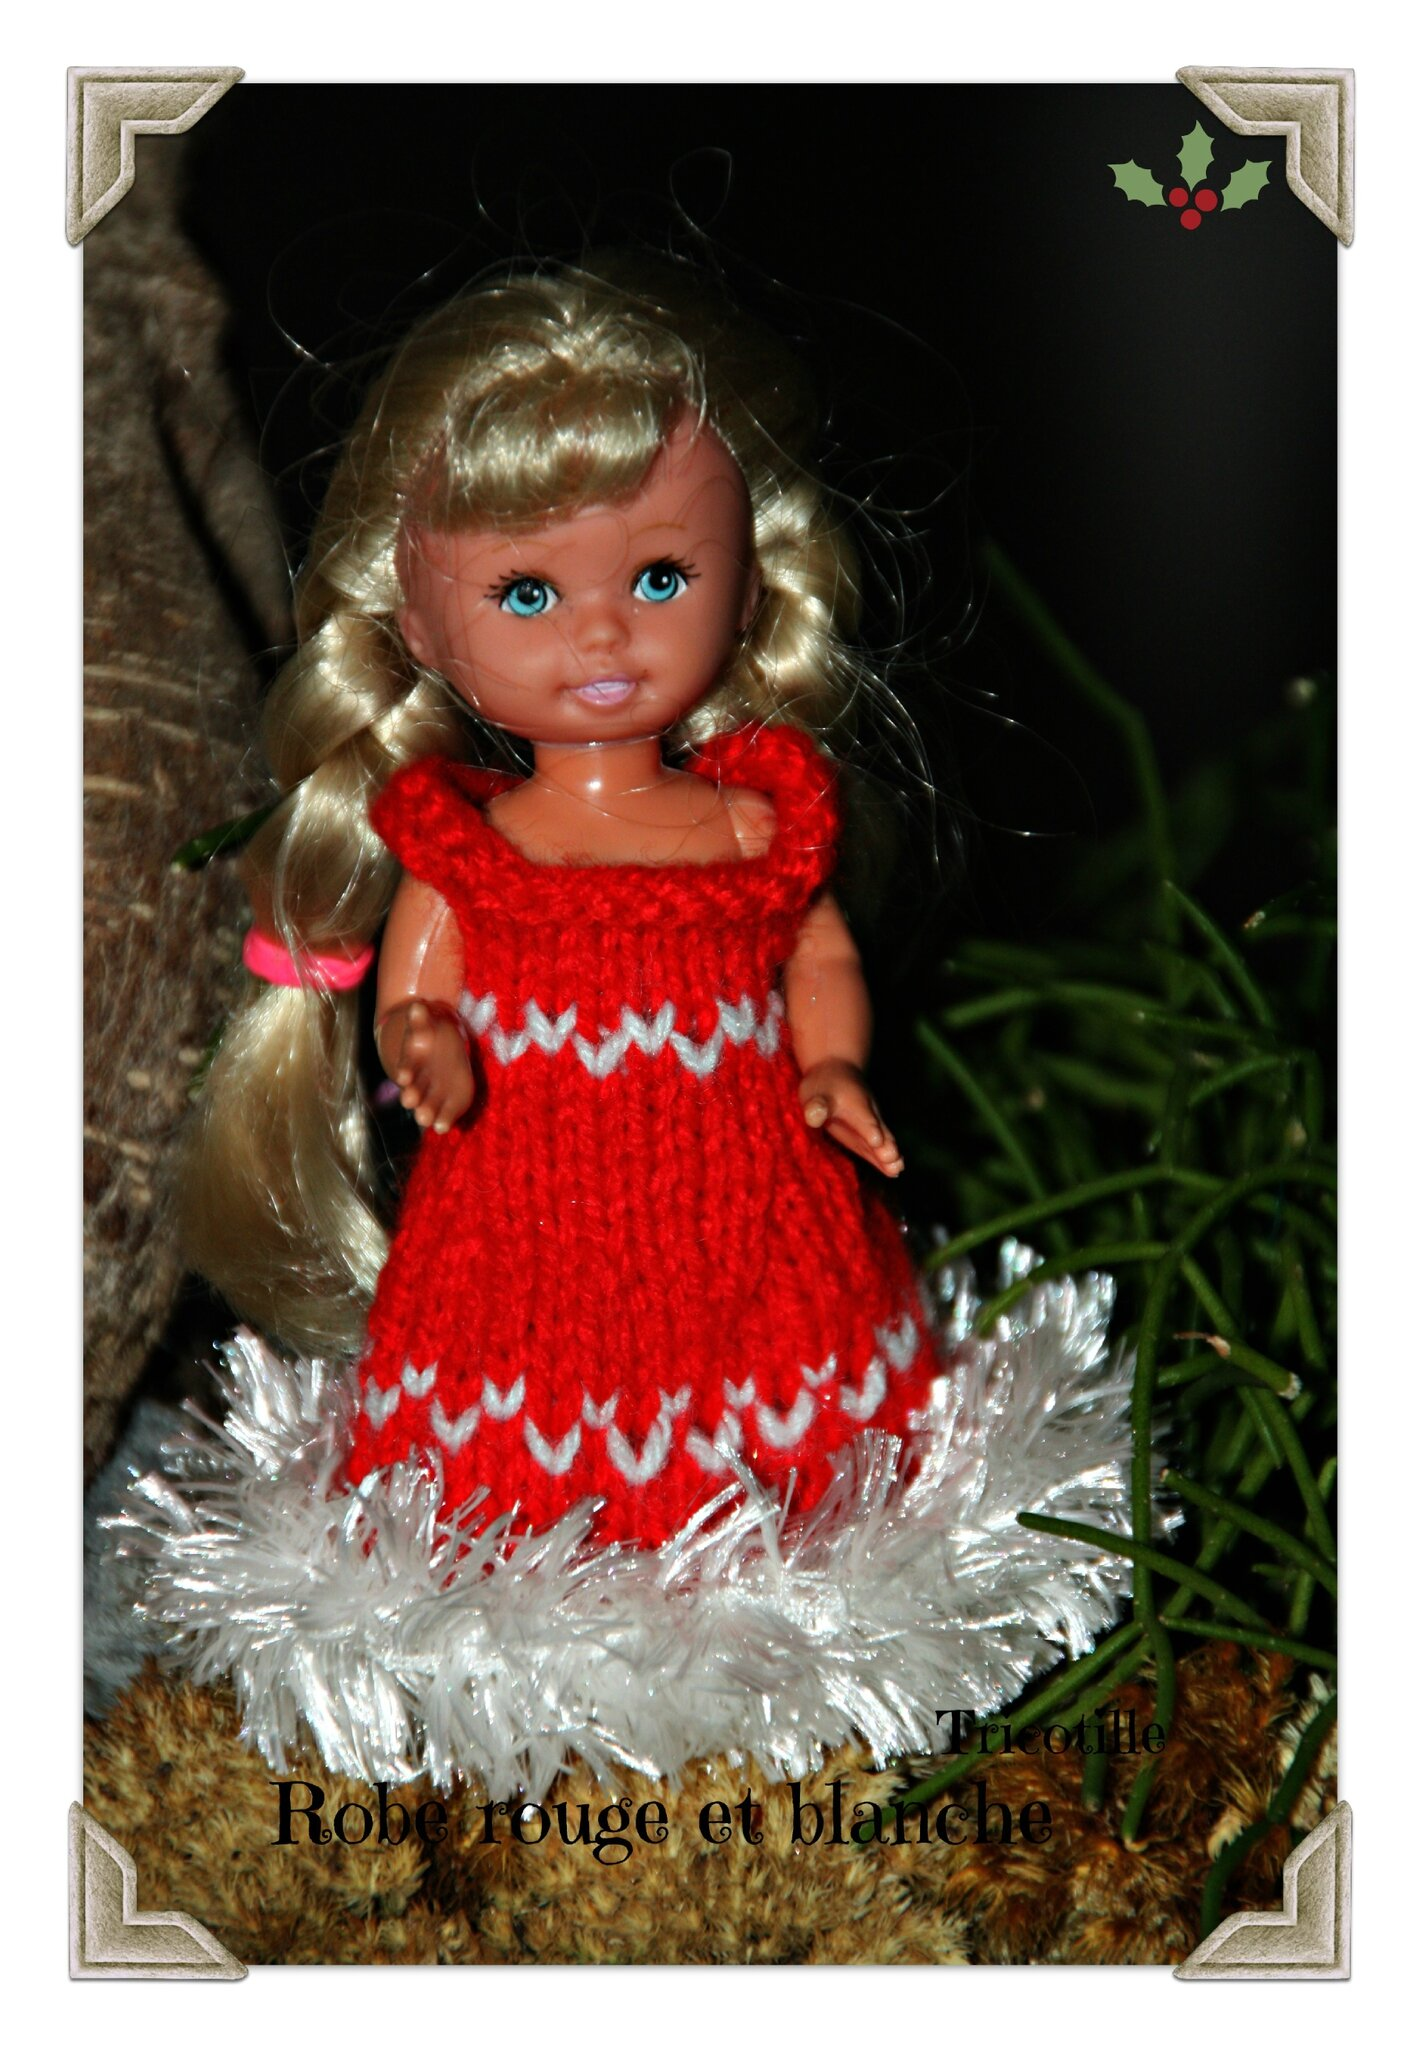 Robe rouge et blanche (shelly)